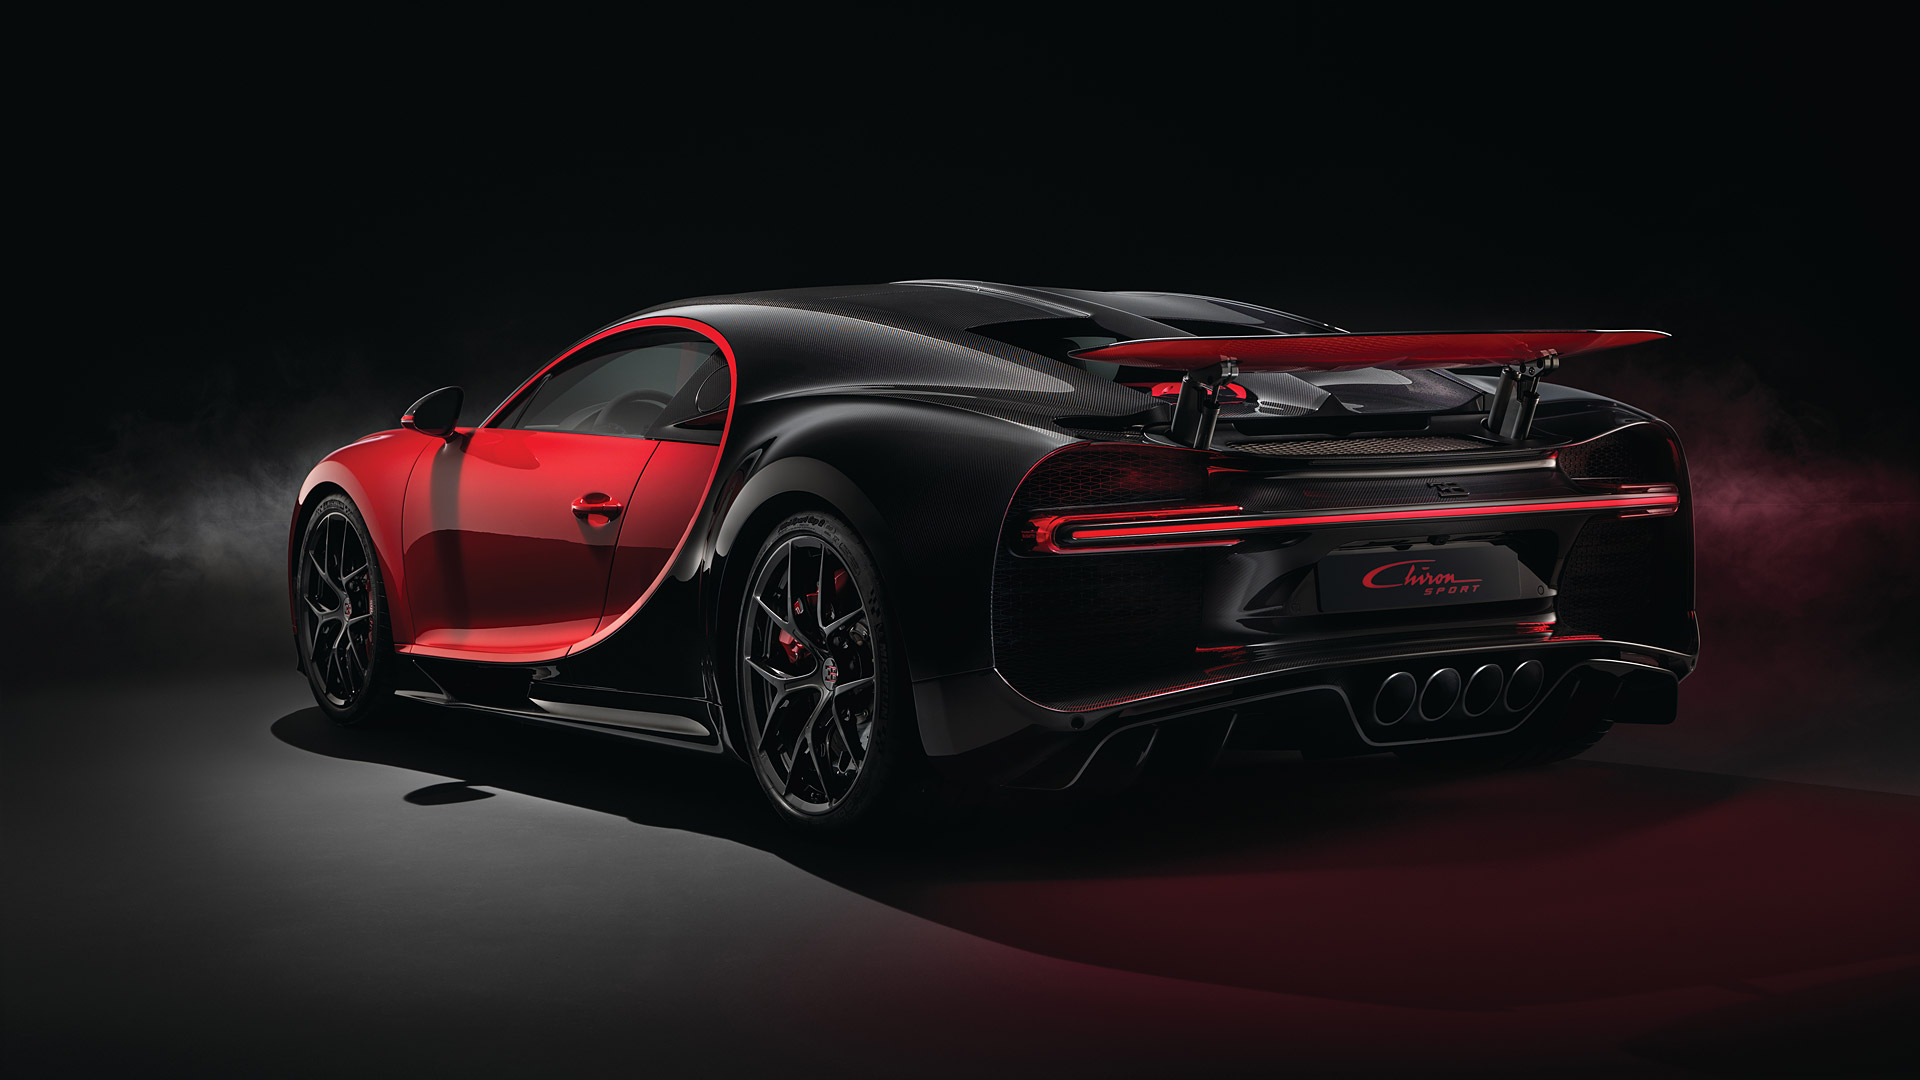 2019 Bugatti Chiron Sport Wallpapers HD Images   WSupercars 1920x1080